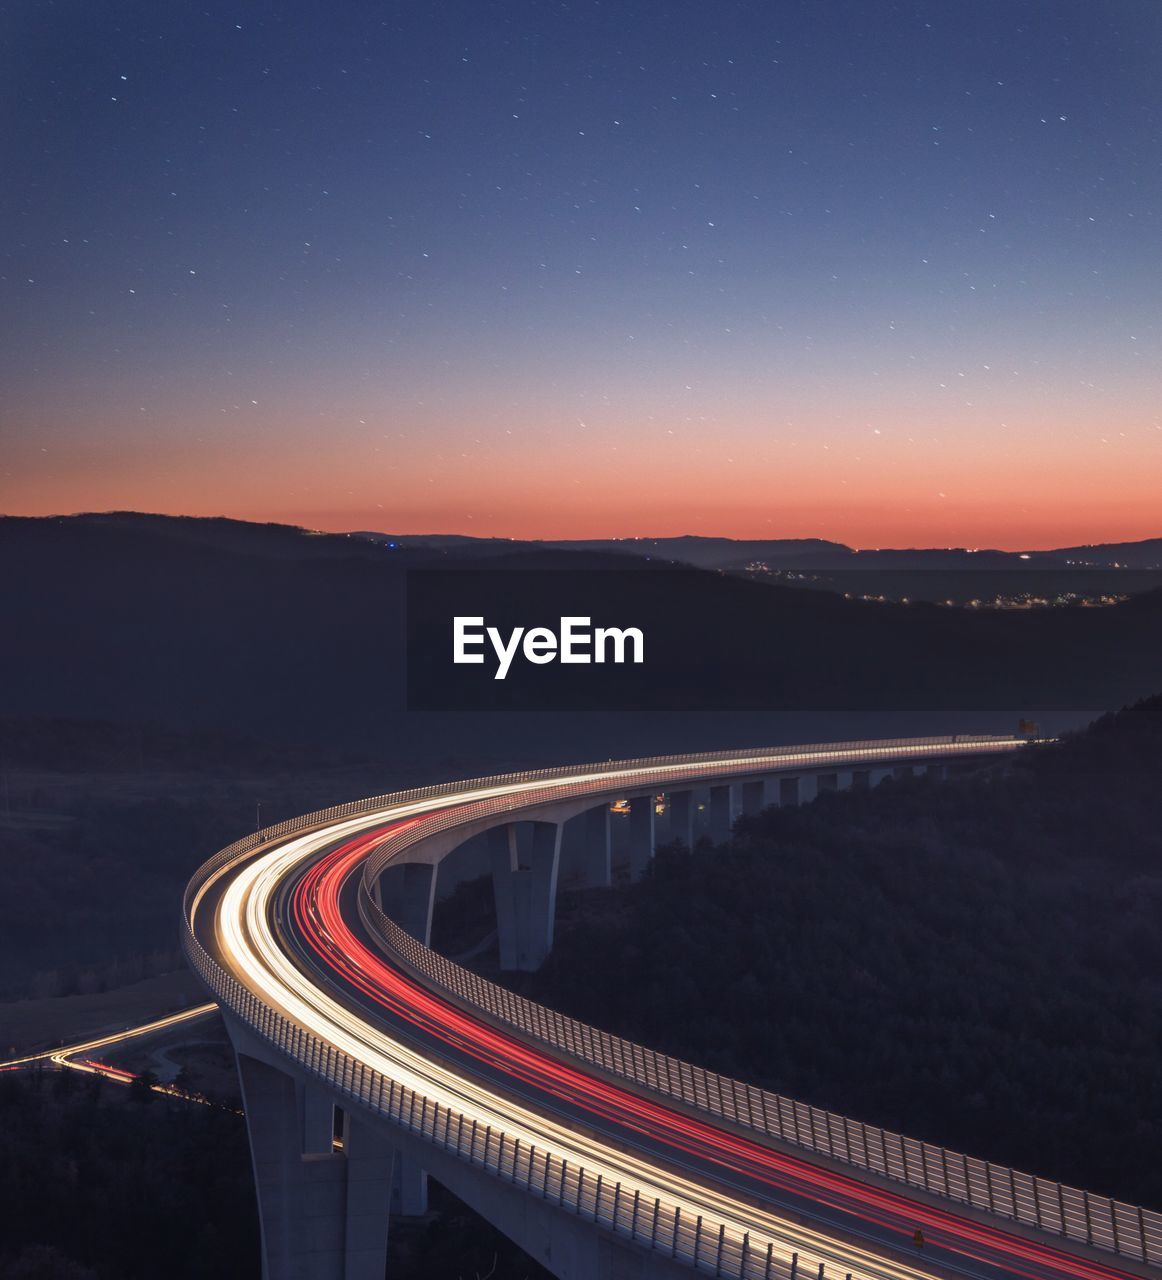 night, sky, illuminated, long exposure, road, light trail, motion, nature, mountain, scenics - nature, star - space, transportation, speed, no people, connection, high angle view, bridge, space, city, bridge - man made structure, astronomy, outdoors